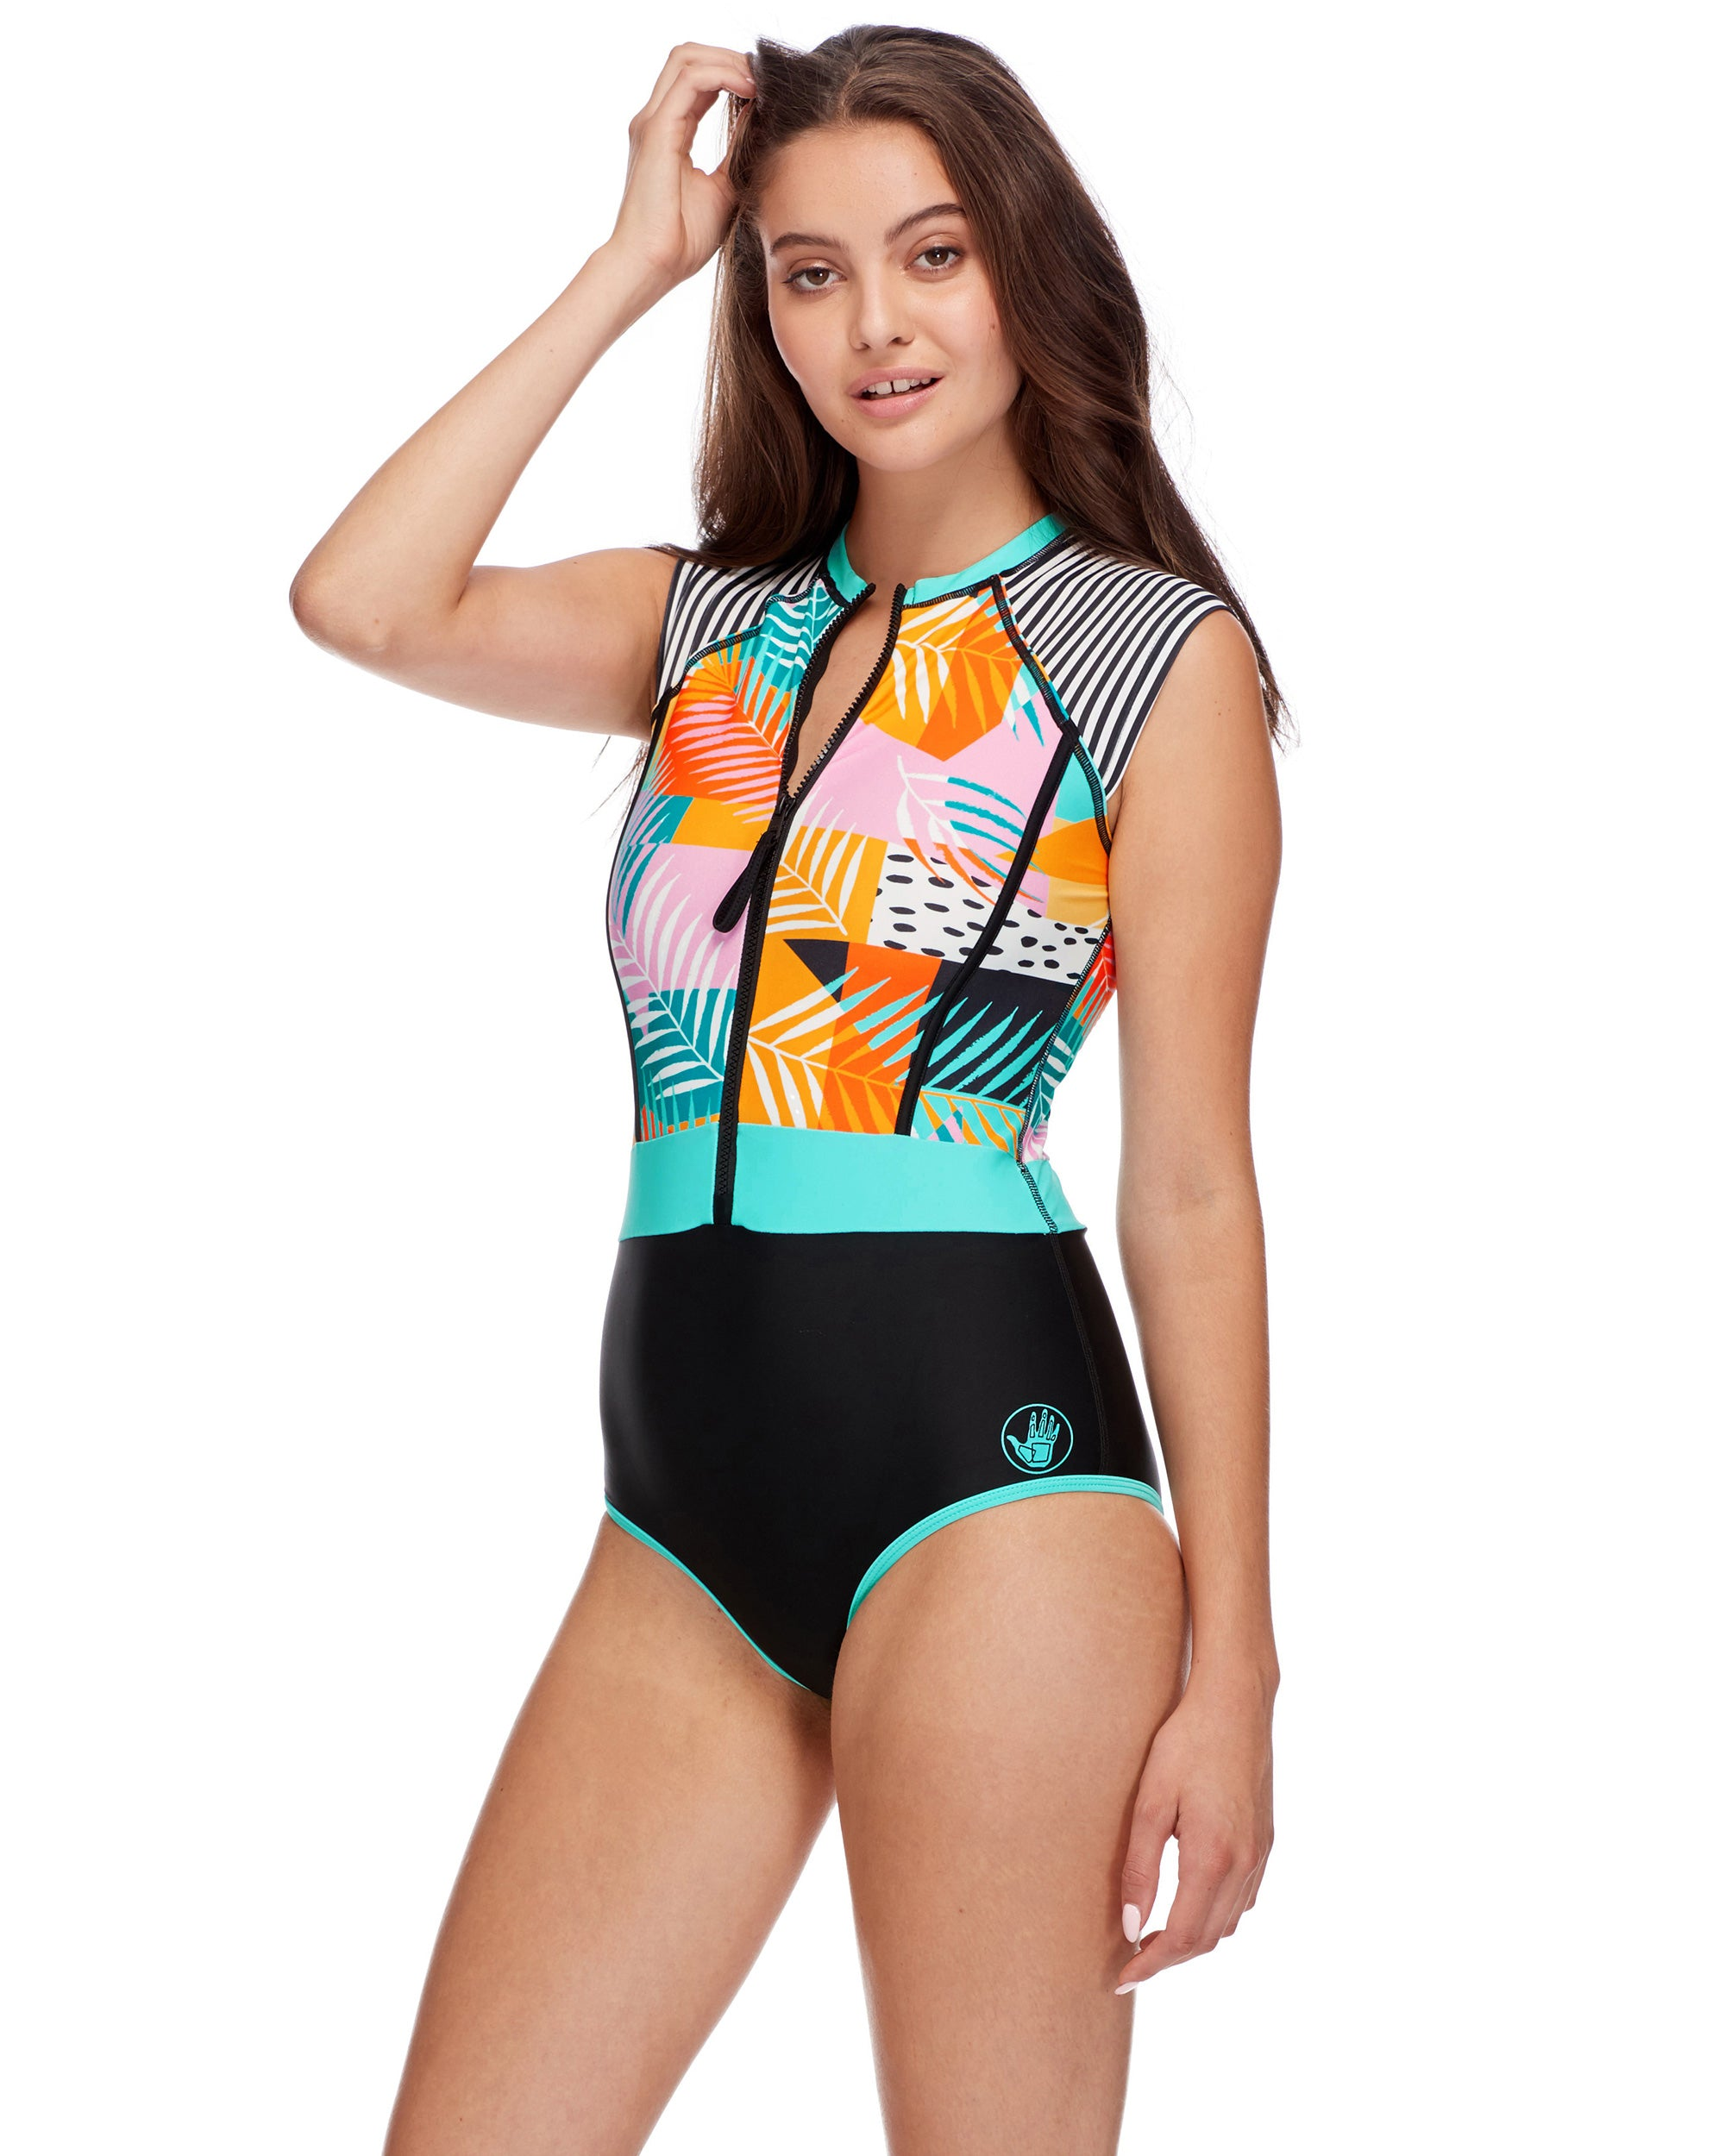 Five Stand Up Paddle Suit - Multi